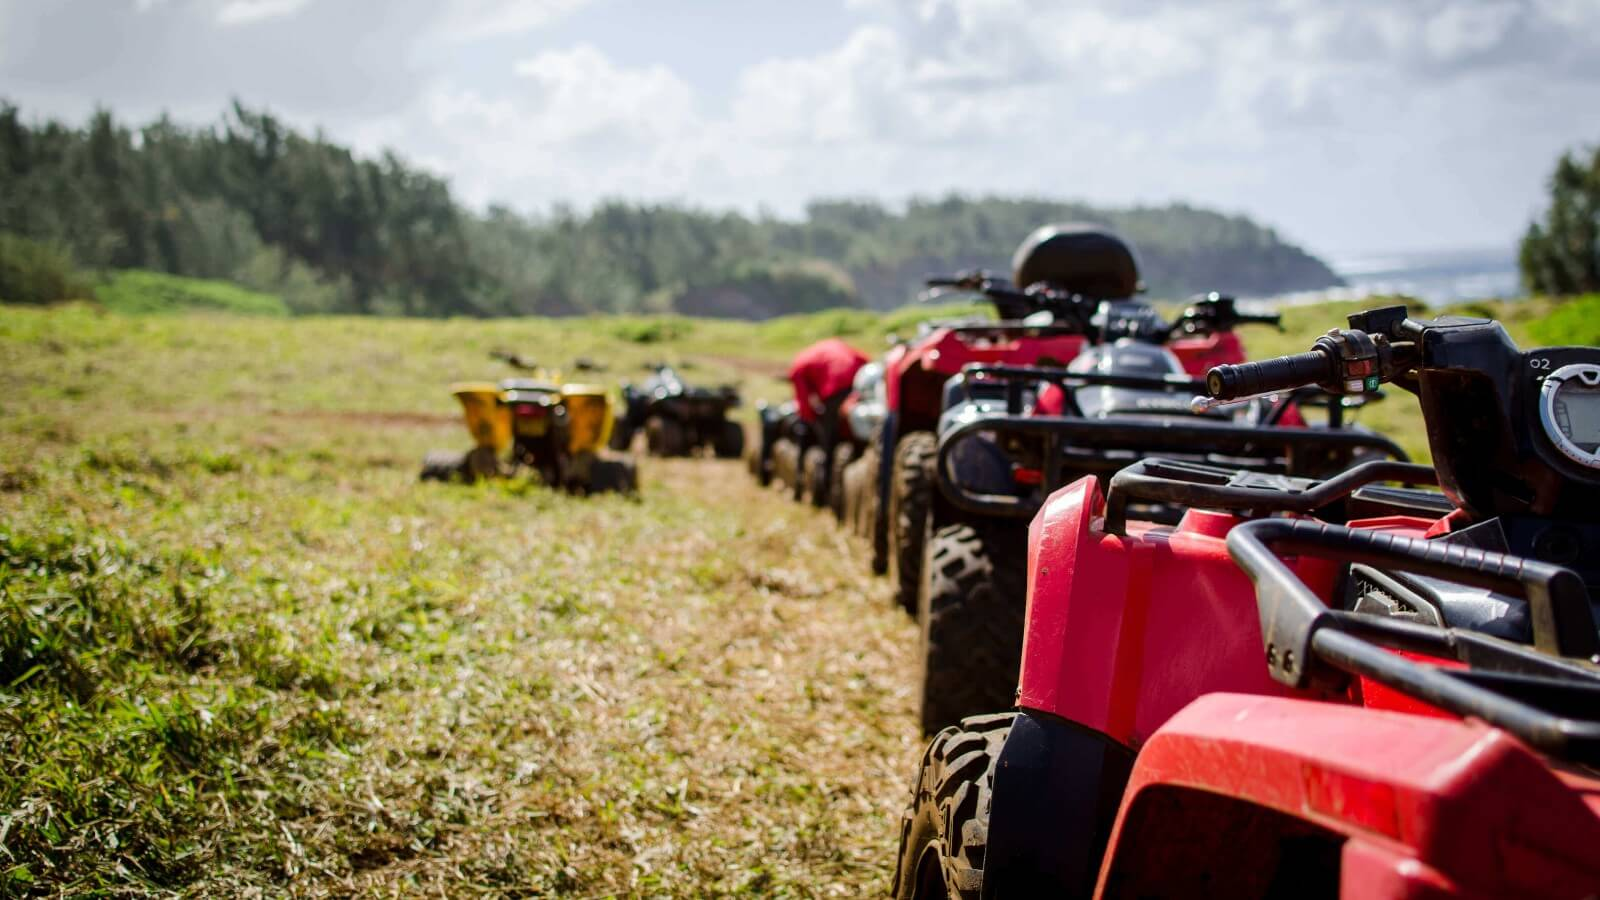 History of ATVs